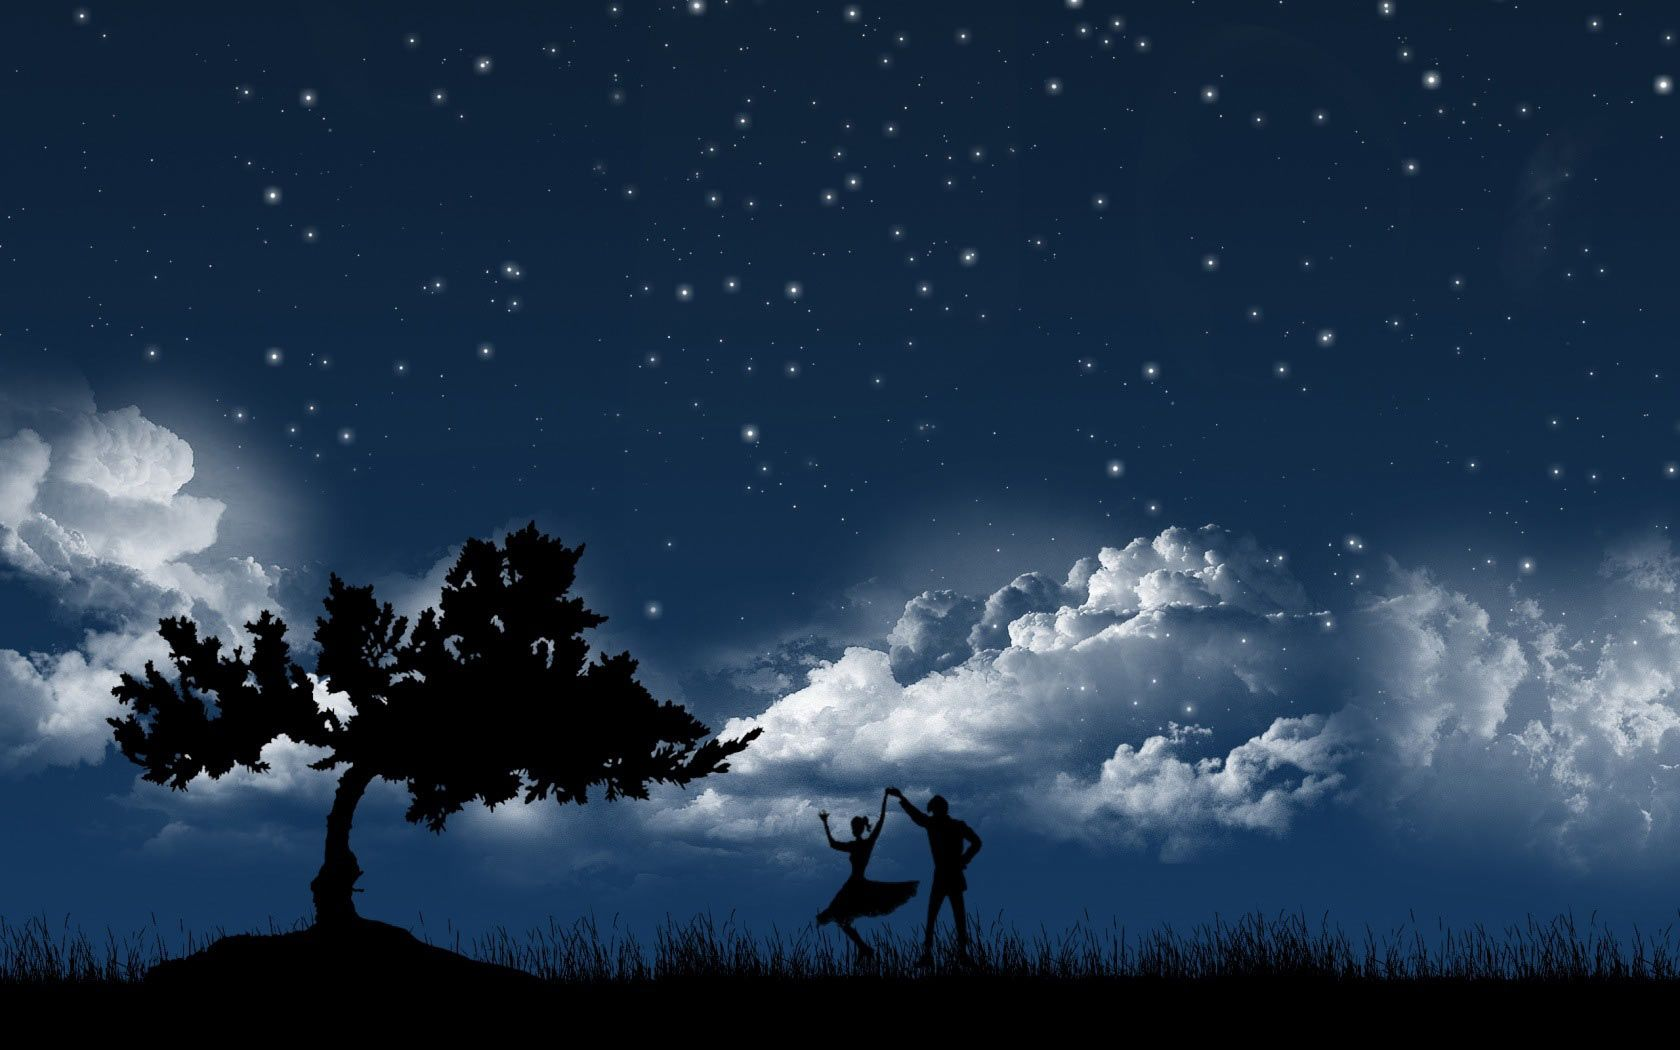 Free Wallpapers For Desktop Free Windows 7 Hd Wallpaper And Make This Wallpaper For Your Des Dancing In The Moonlight Good Night Wallpaper Night Pictures